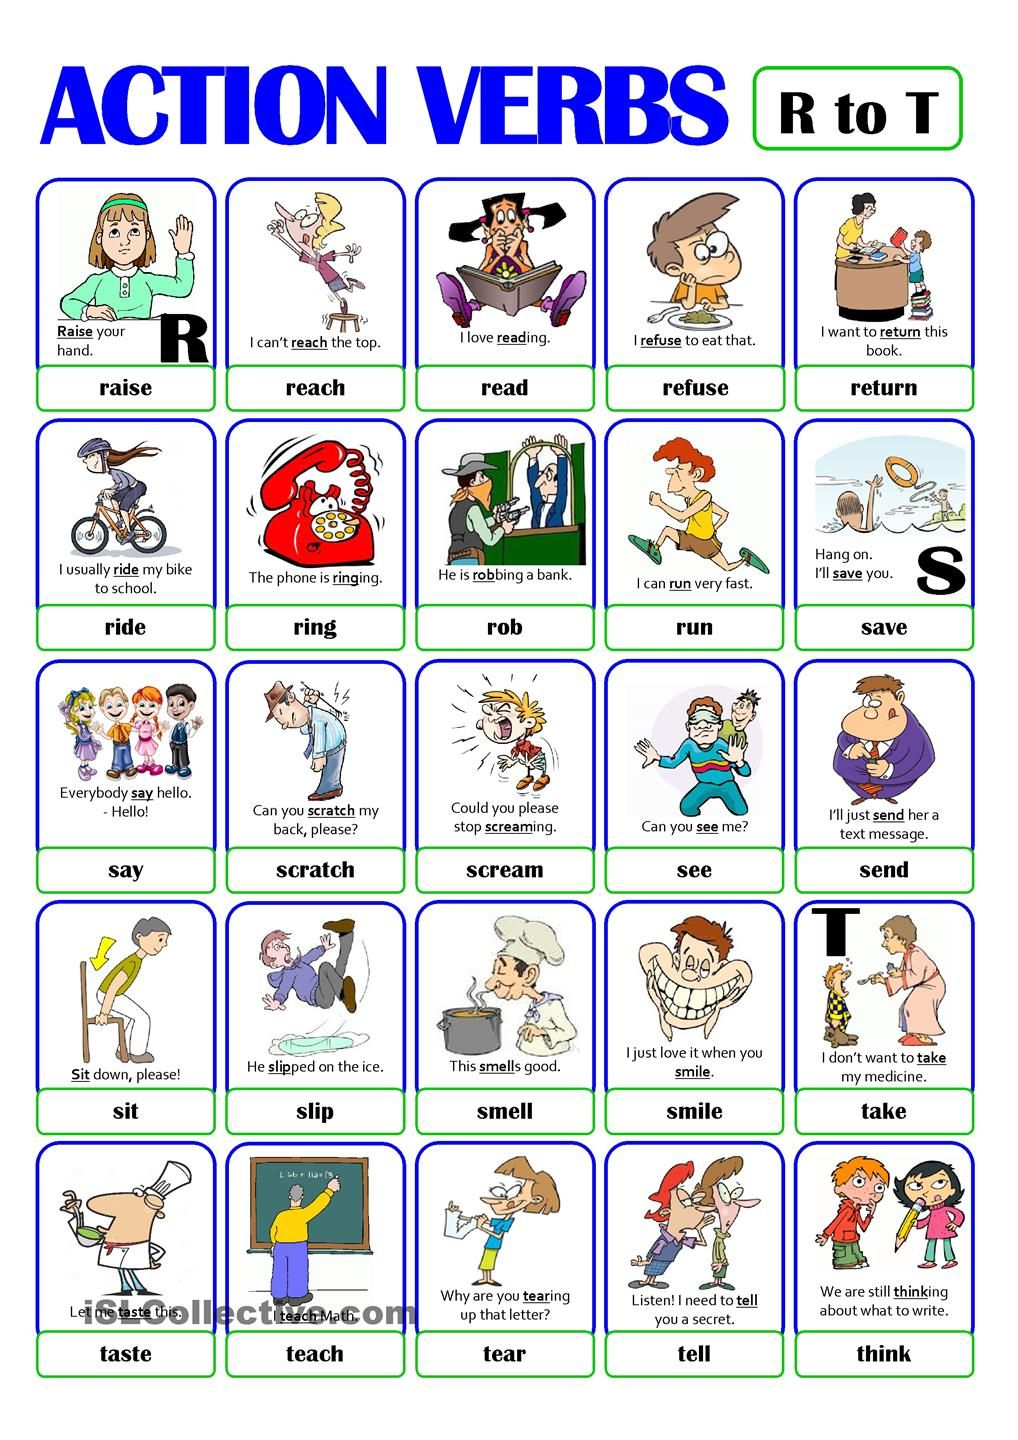 Pictionary  Action Verb Set (4)  From R To T  English  English Verbs, Action Verbs, English